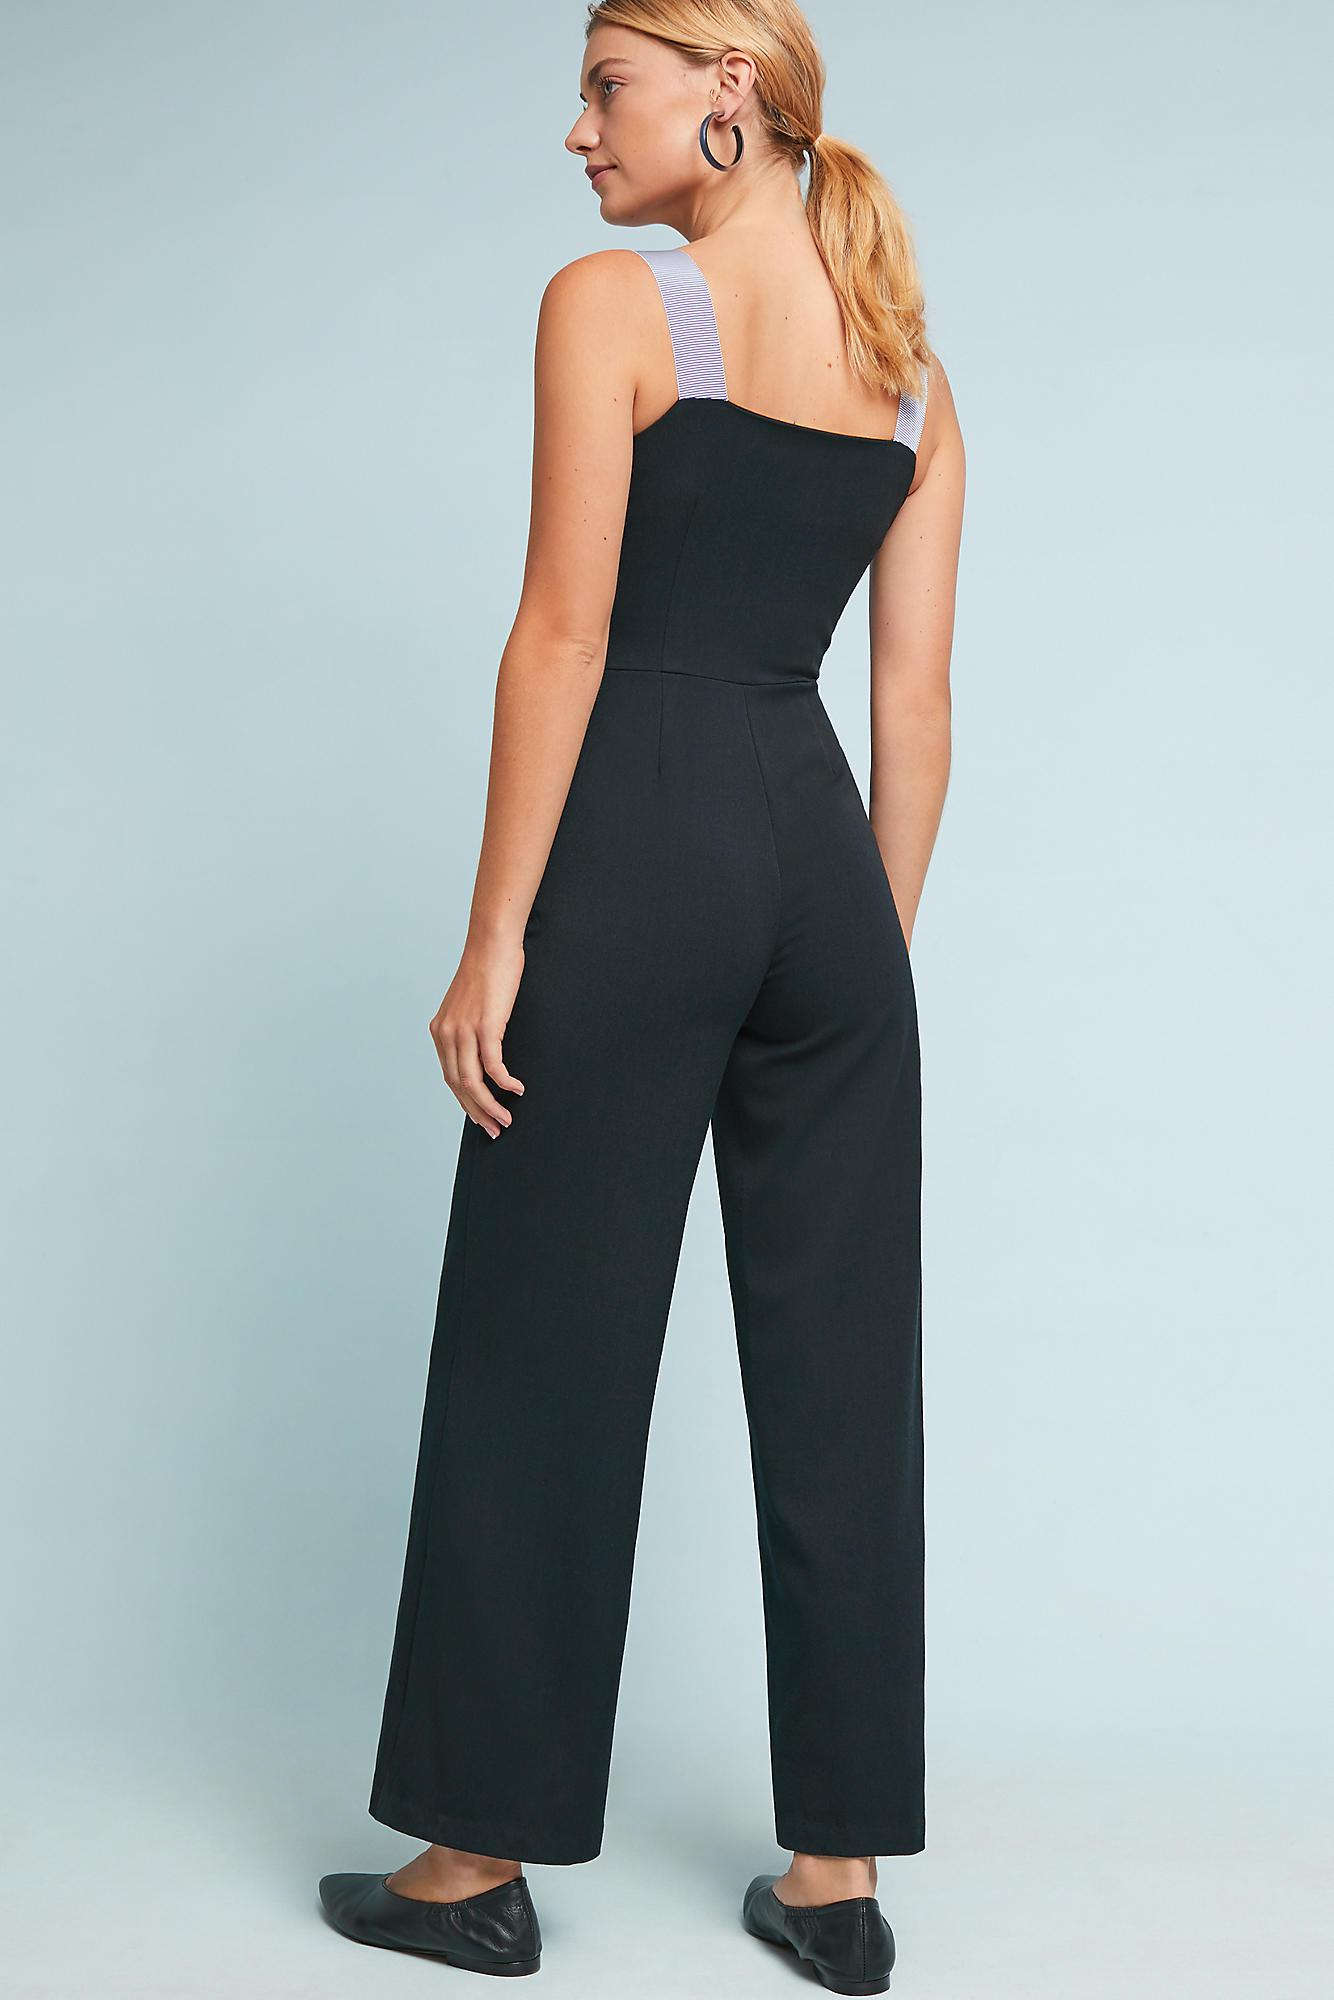 92a6afd883 Anthropologie Astoria Pinafore Jumpsuit in Black - Lyst